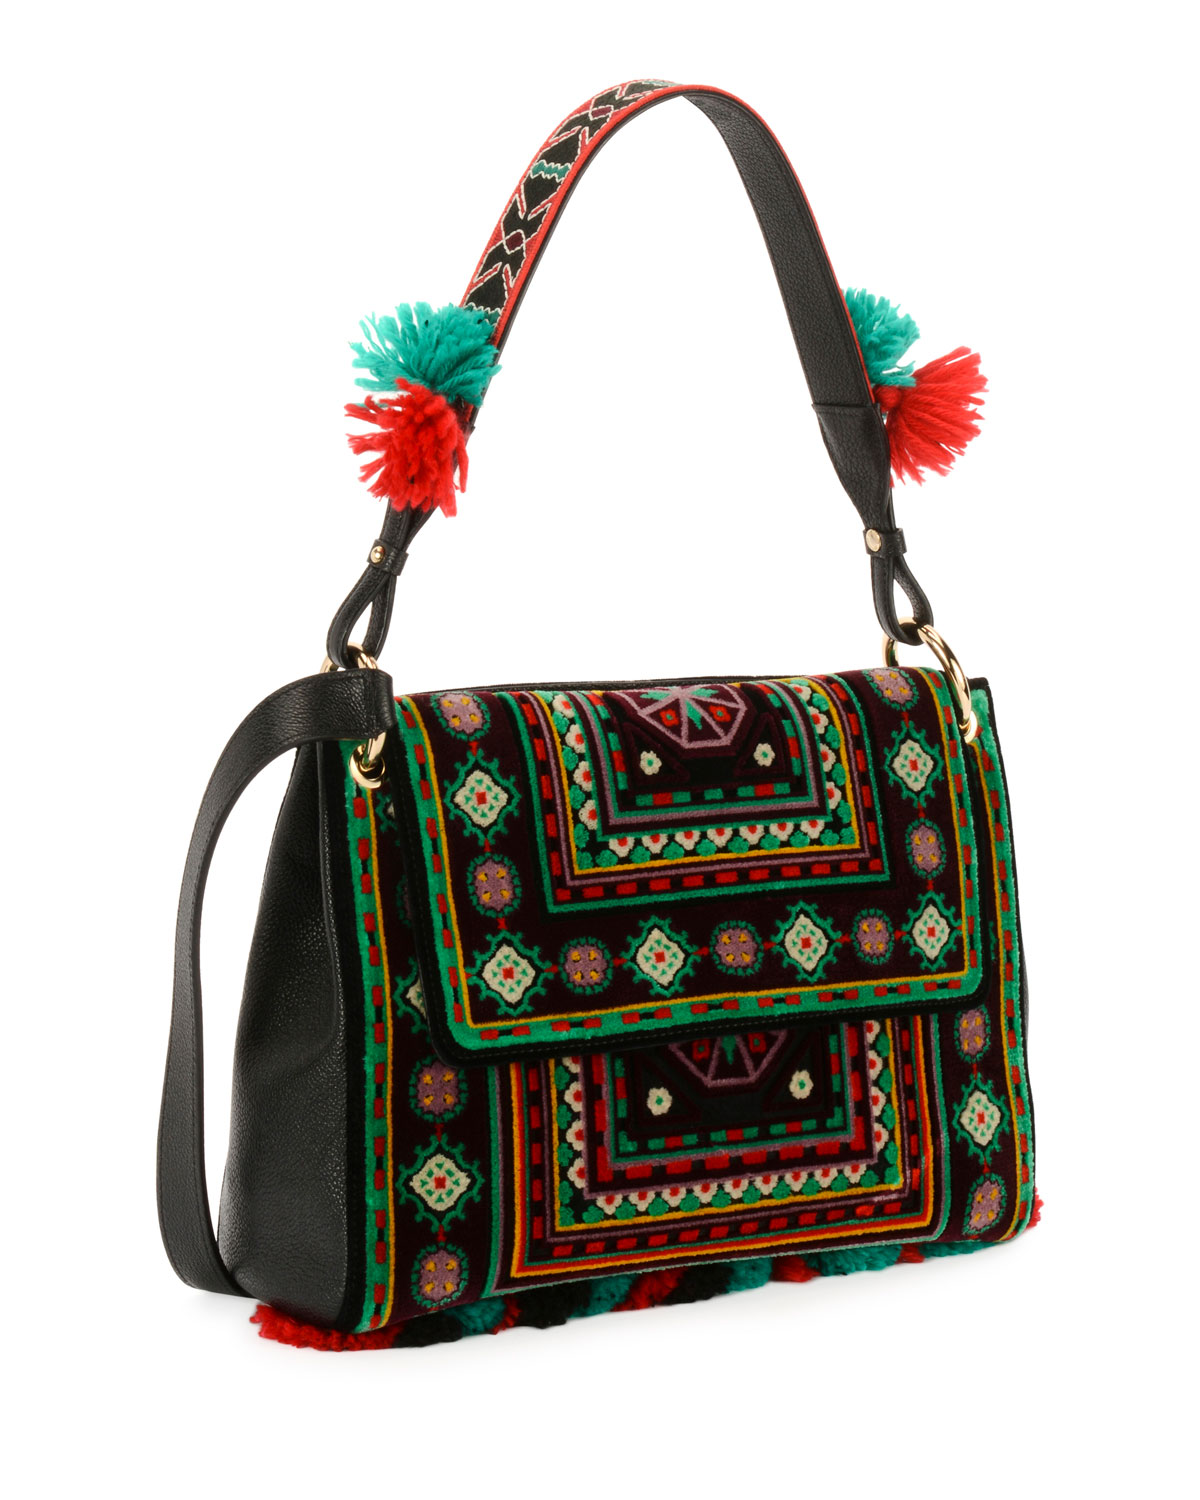 B Sotto Braccio Carpet Embroidered Shoulder Bag